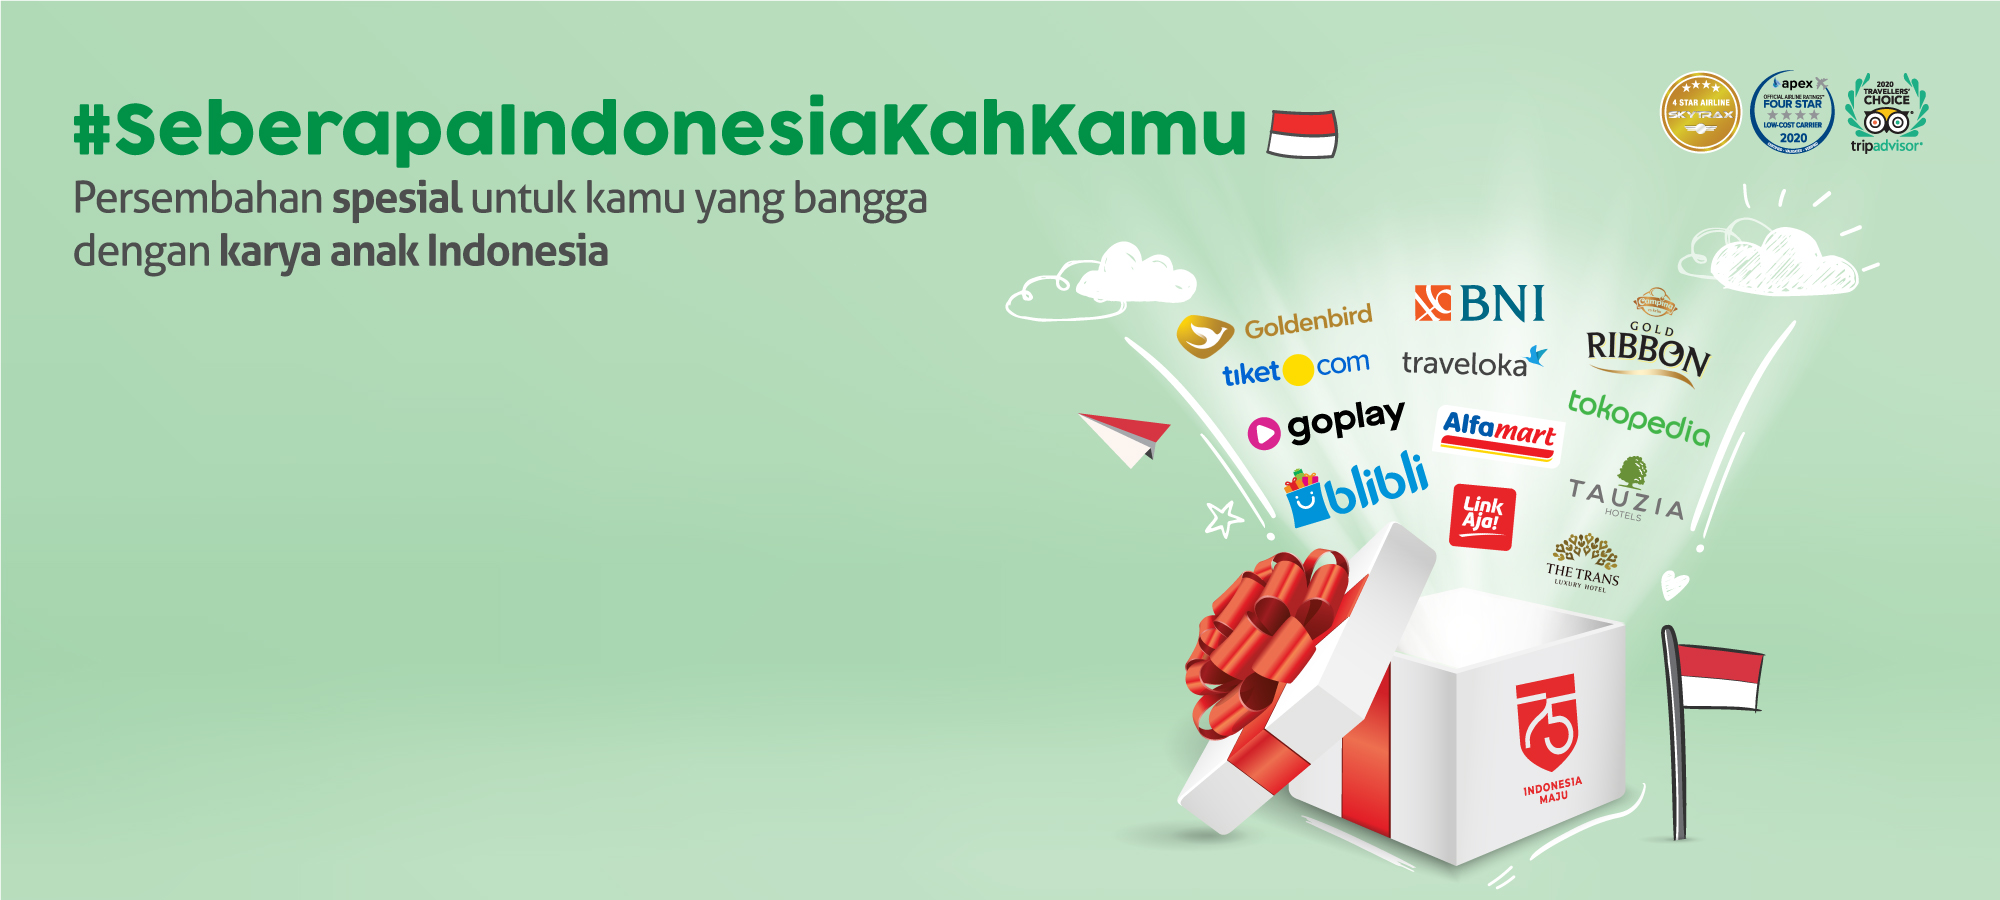 CTL5-Citilink-Main-KV-Mobile-app